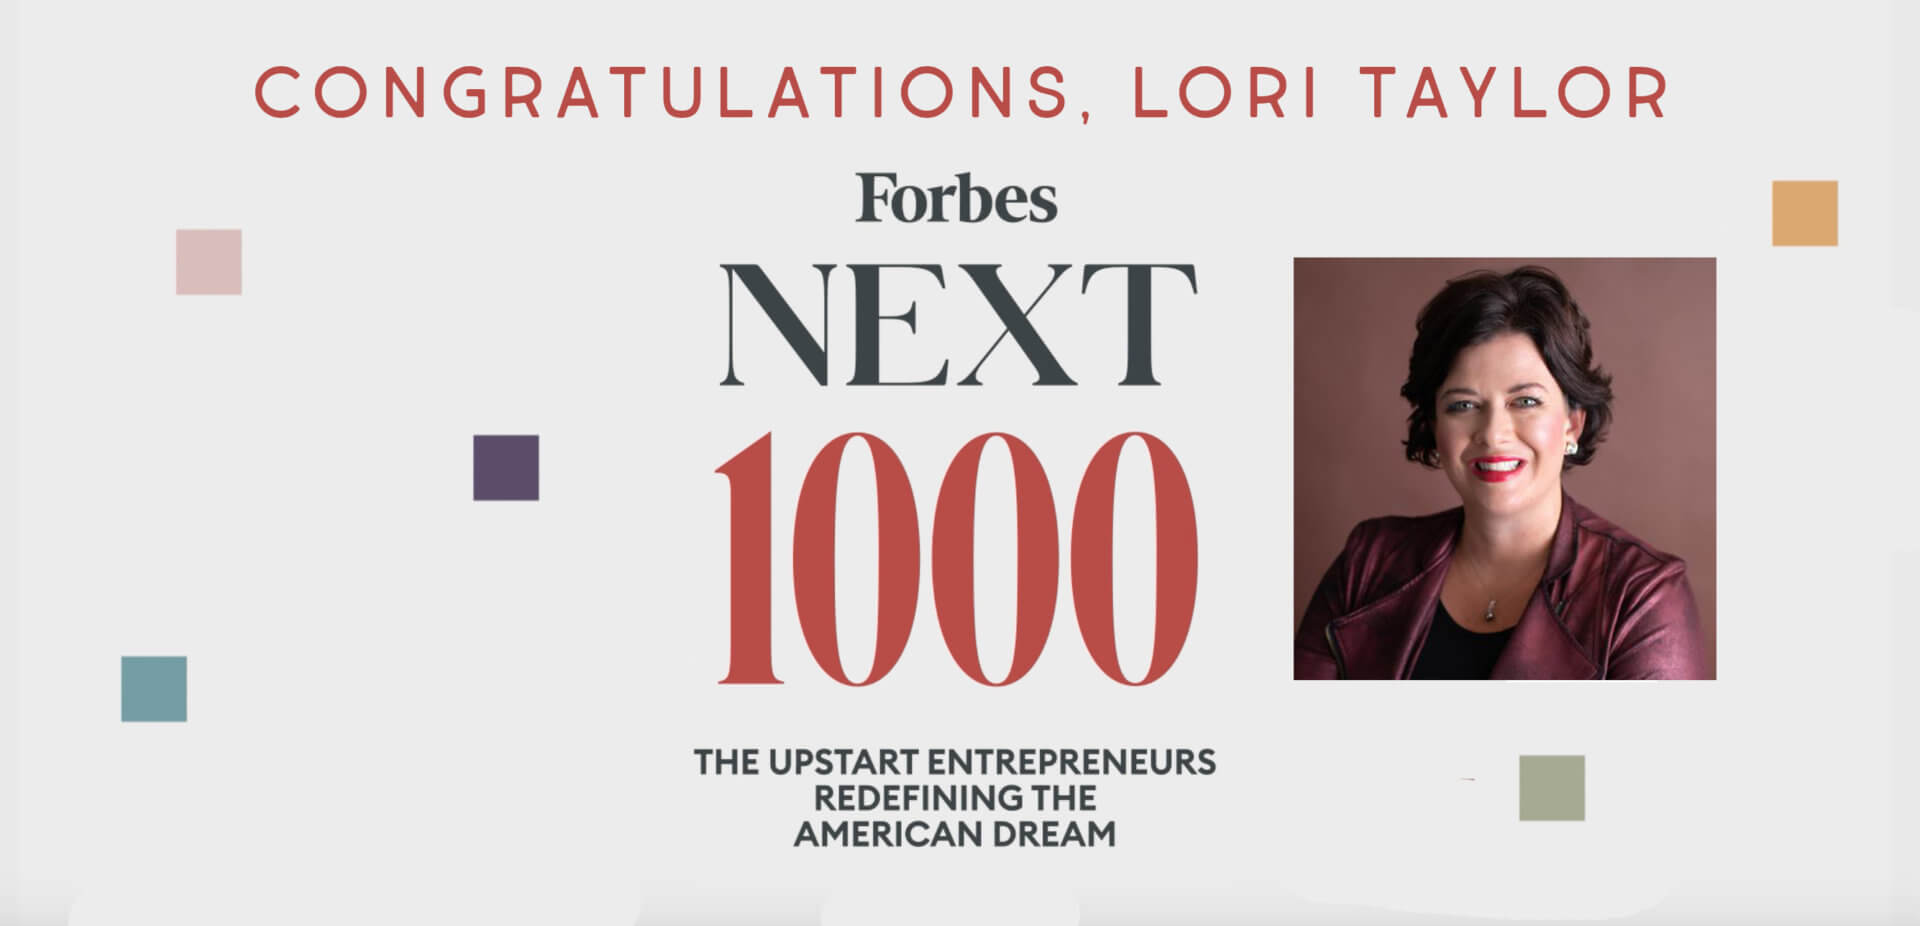 Forbes Next 1000 Welcomes Lori Taylor to Its First-Ever Class